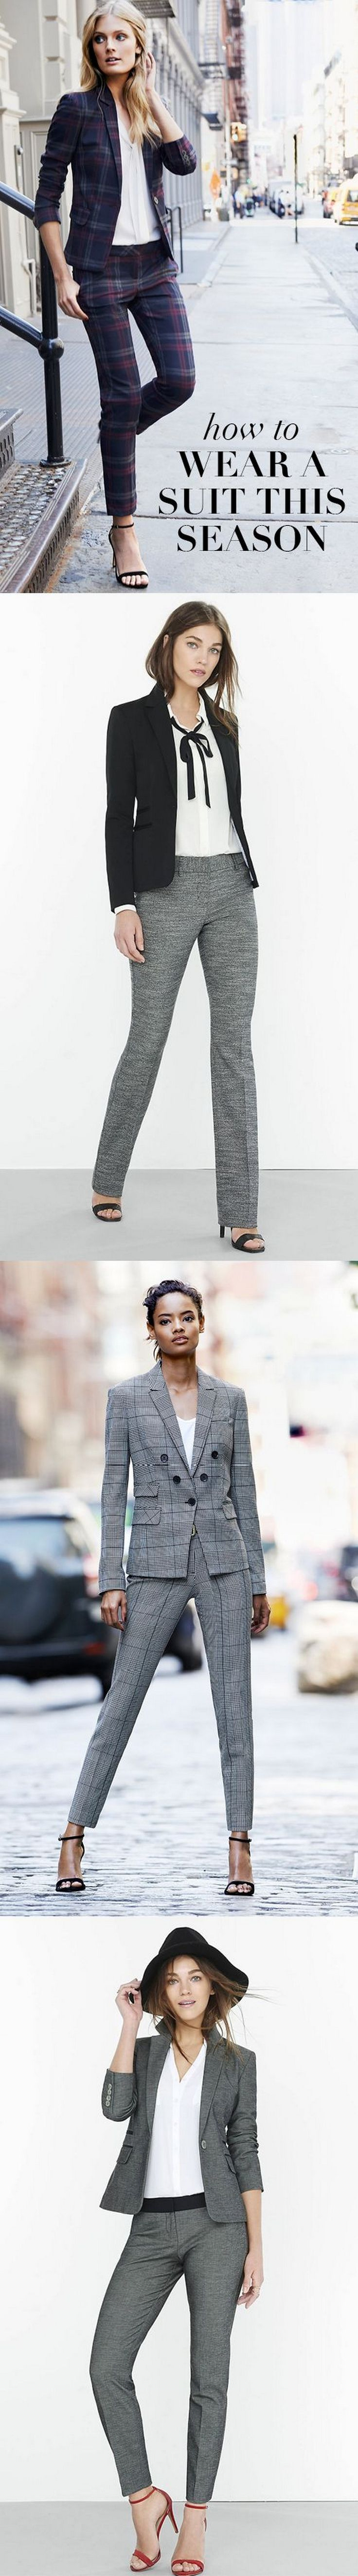 Cool 232 Casual Blazer Outfit for Women You Must Have232 Casual Blazer Outfit for Women You Must Have https://www.fashionetter.com/2017/03/29/232-casual-blazer-outfit-women-must/